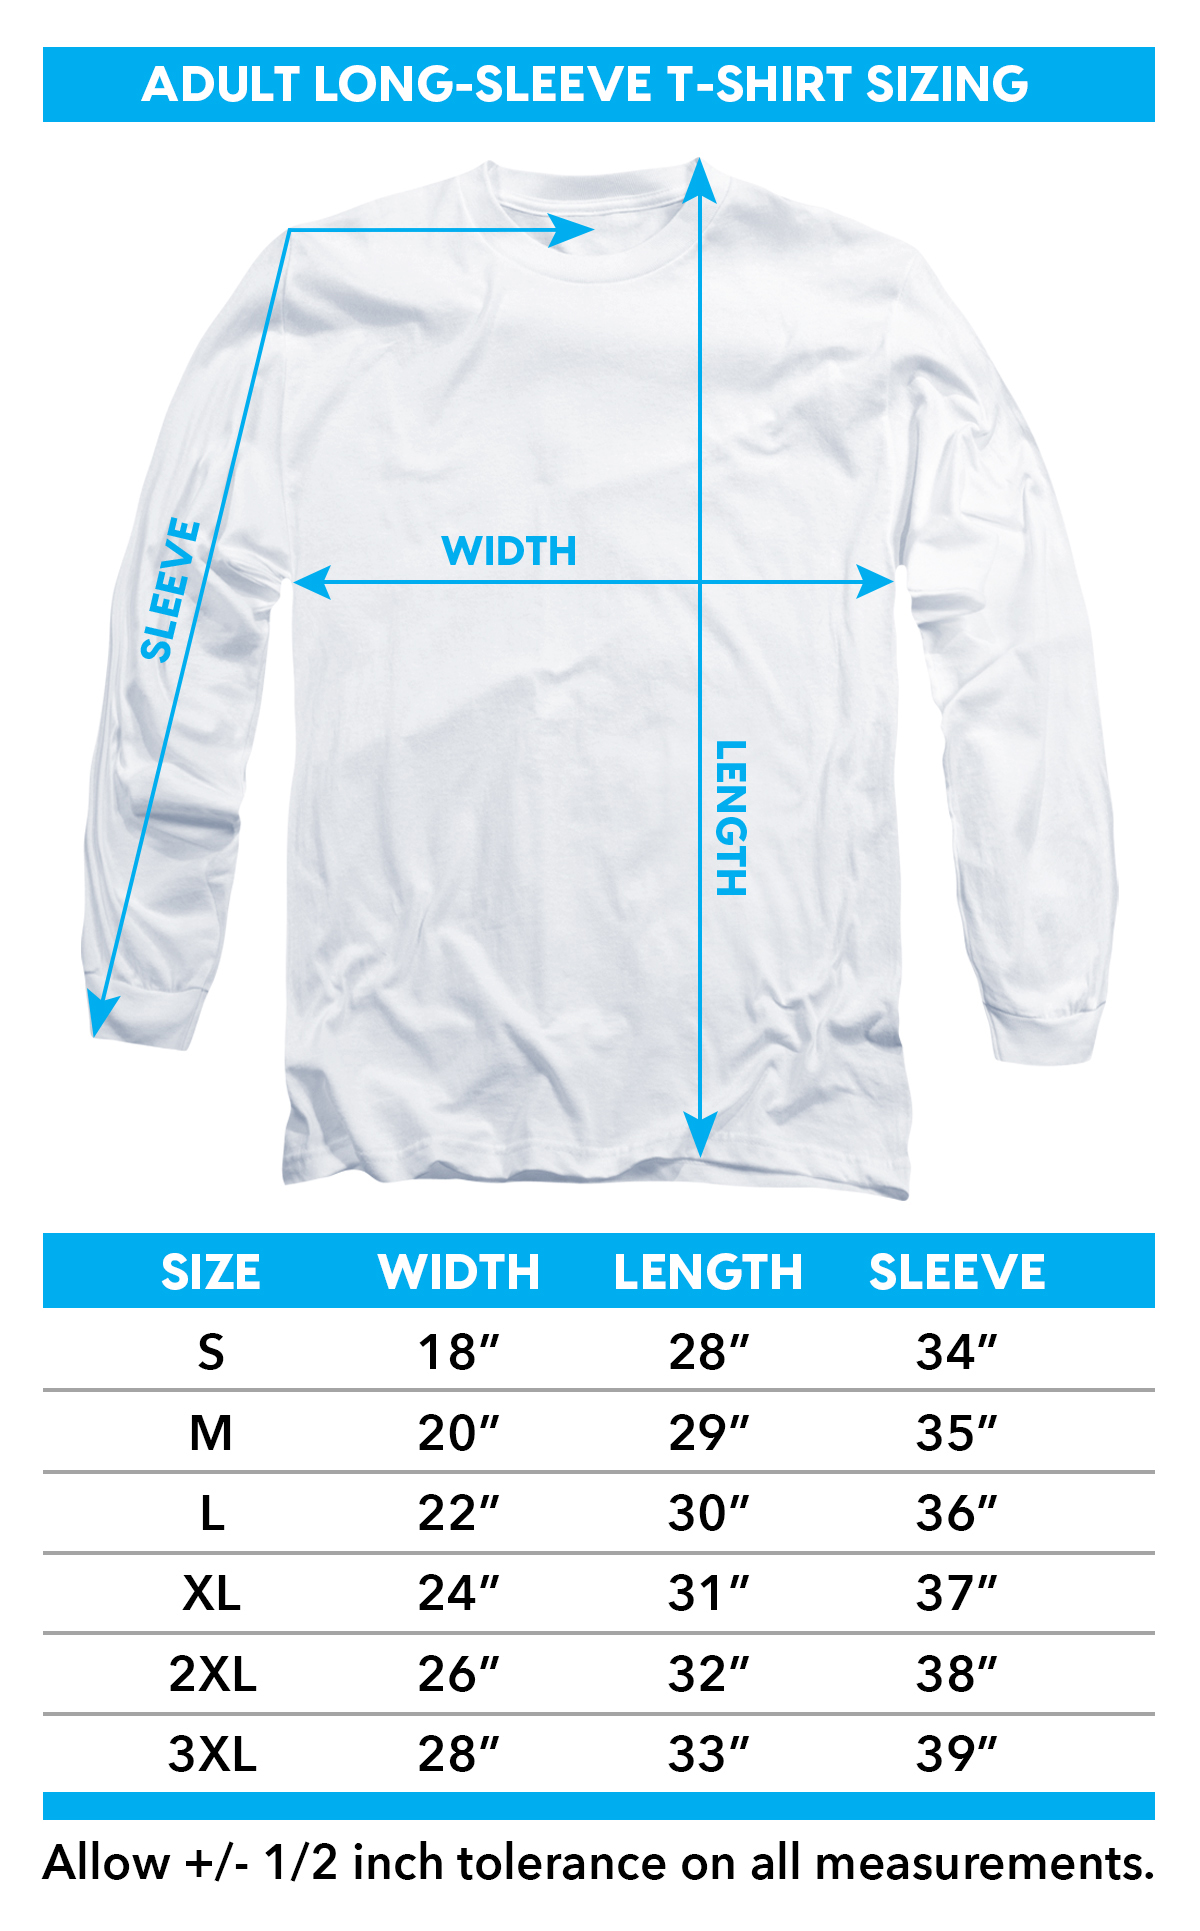 Sizing chart for Columbo Long Sleeve T-Shirt - Question TRV-CBS1055-AL